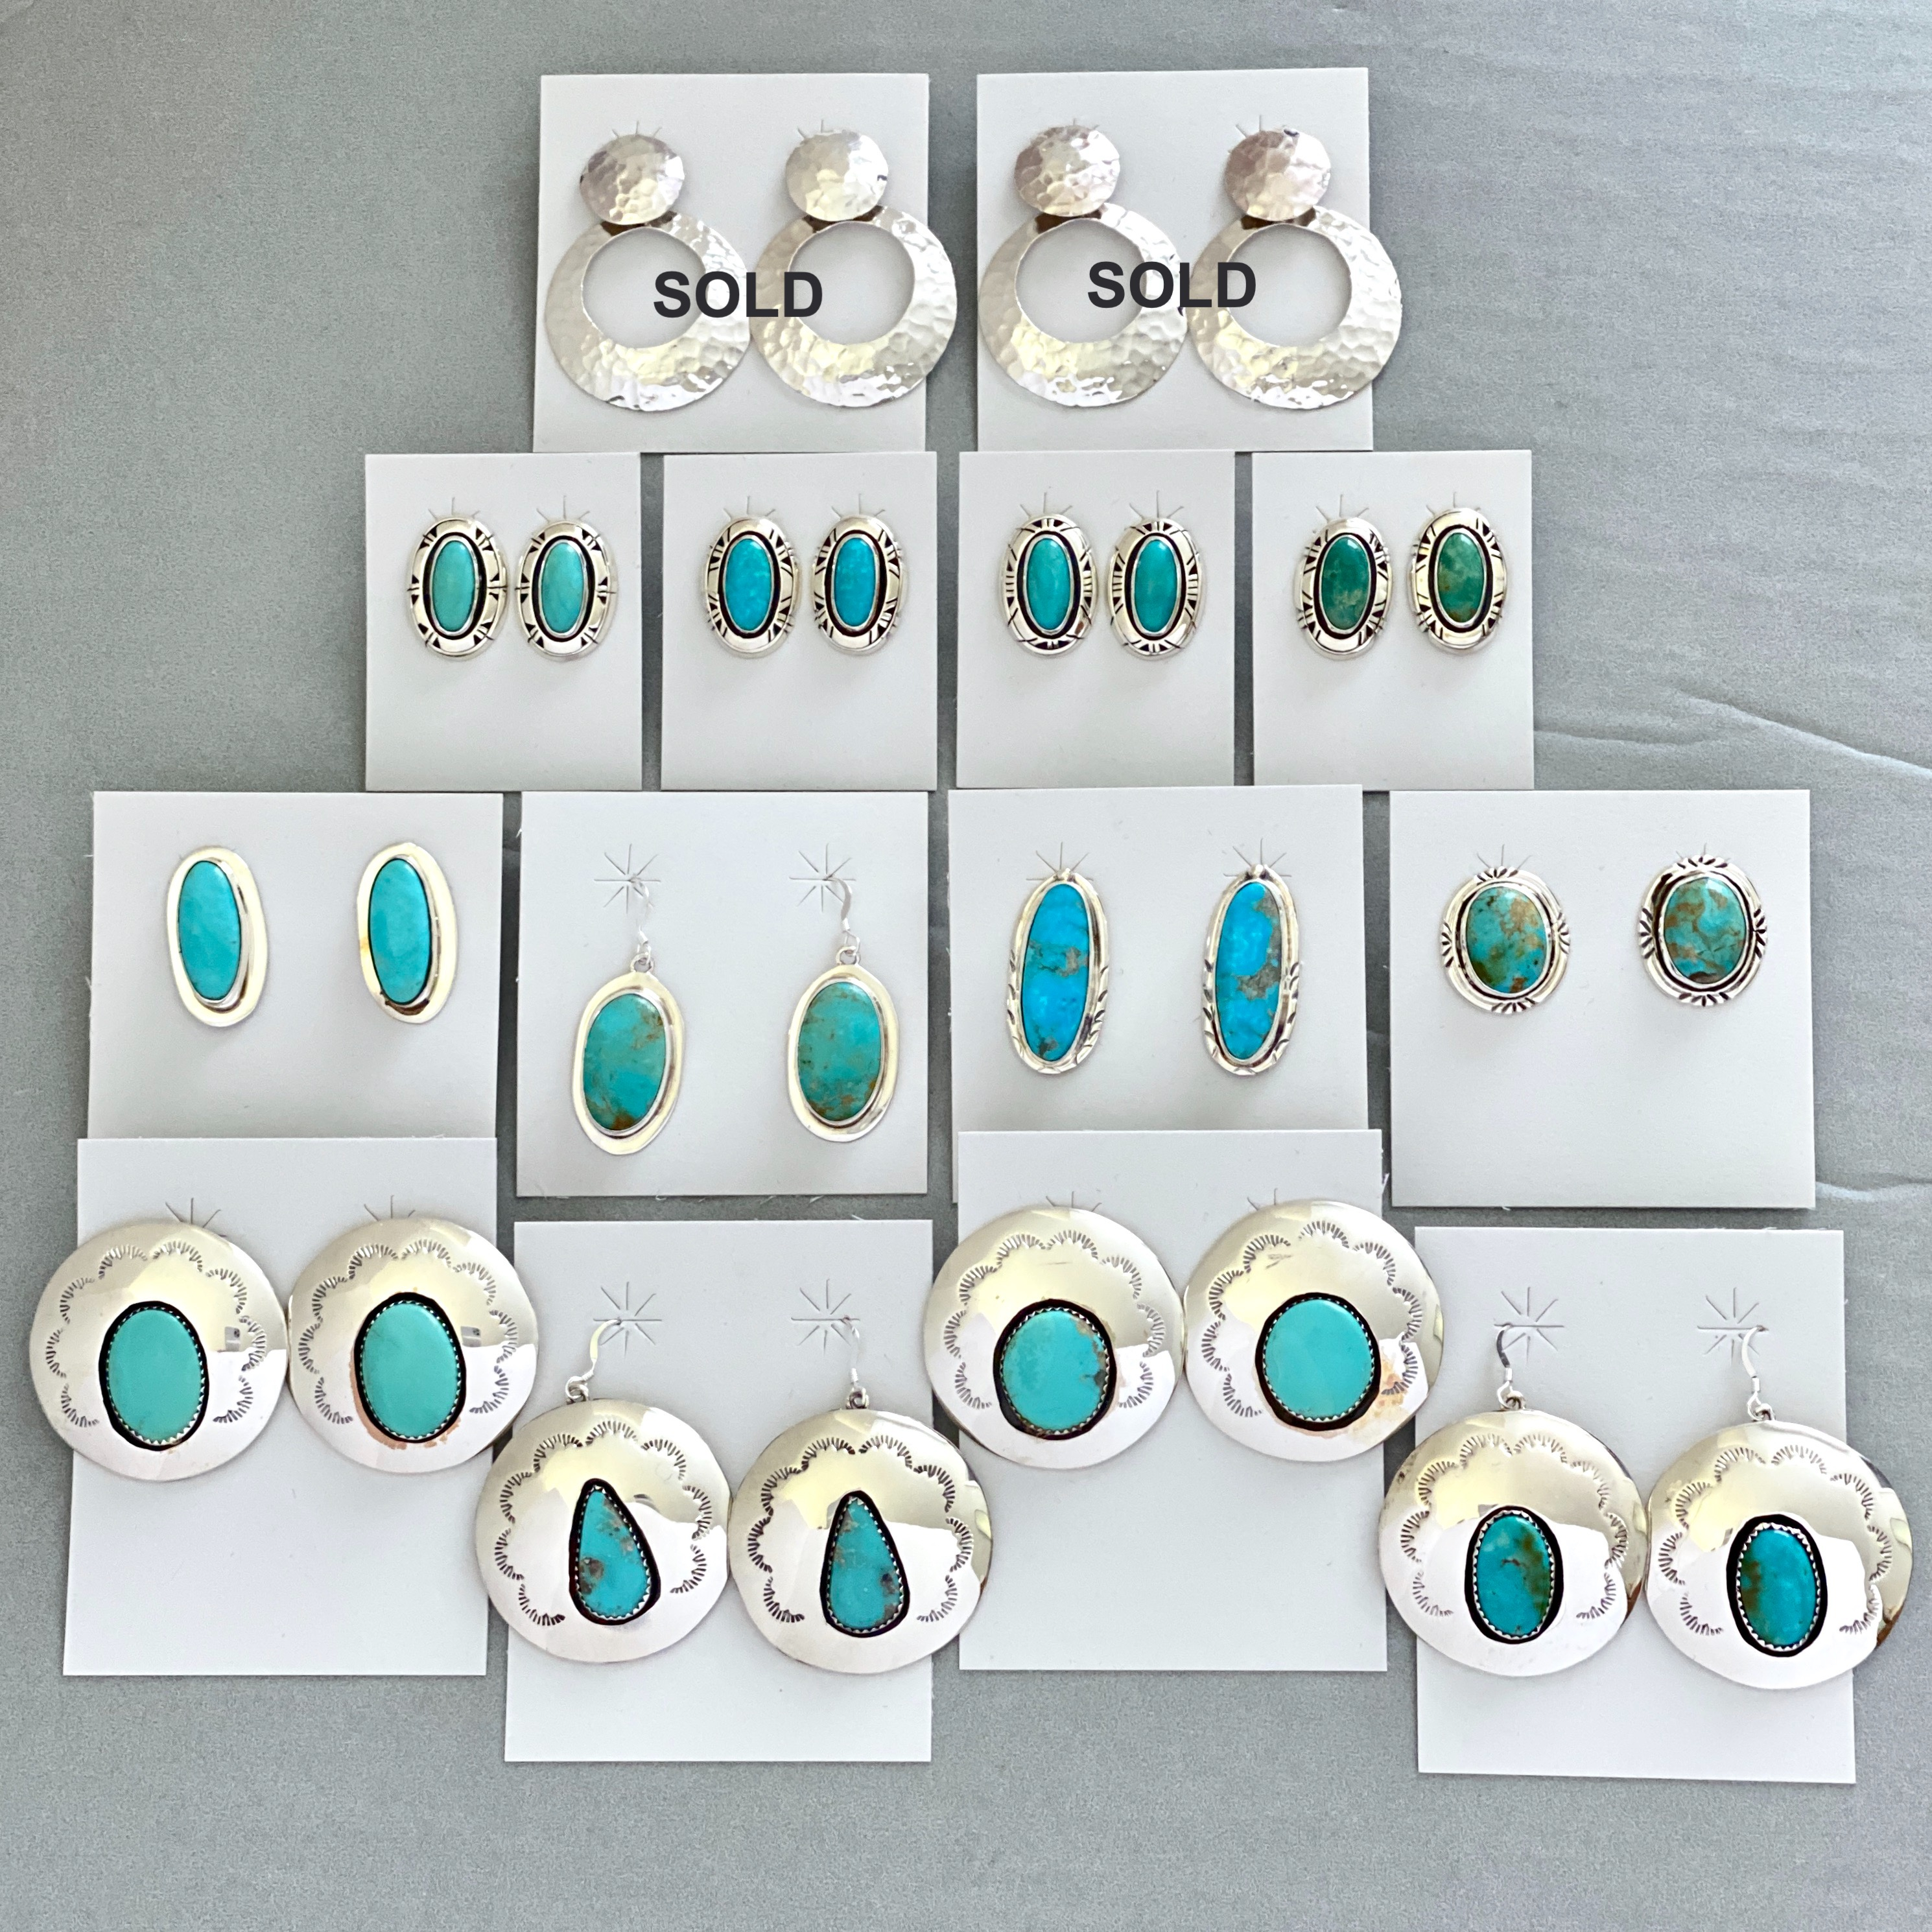 Turquoise/silver mixed earrings